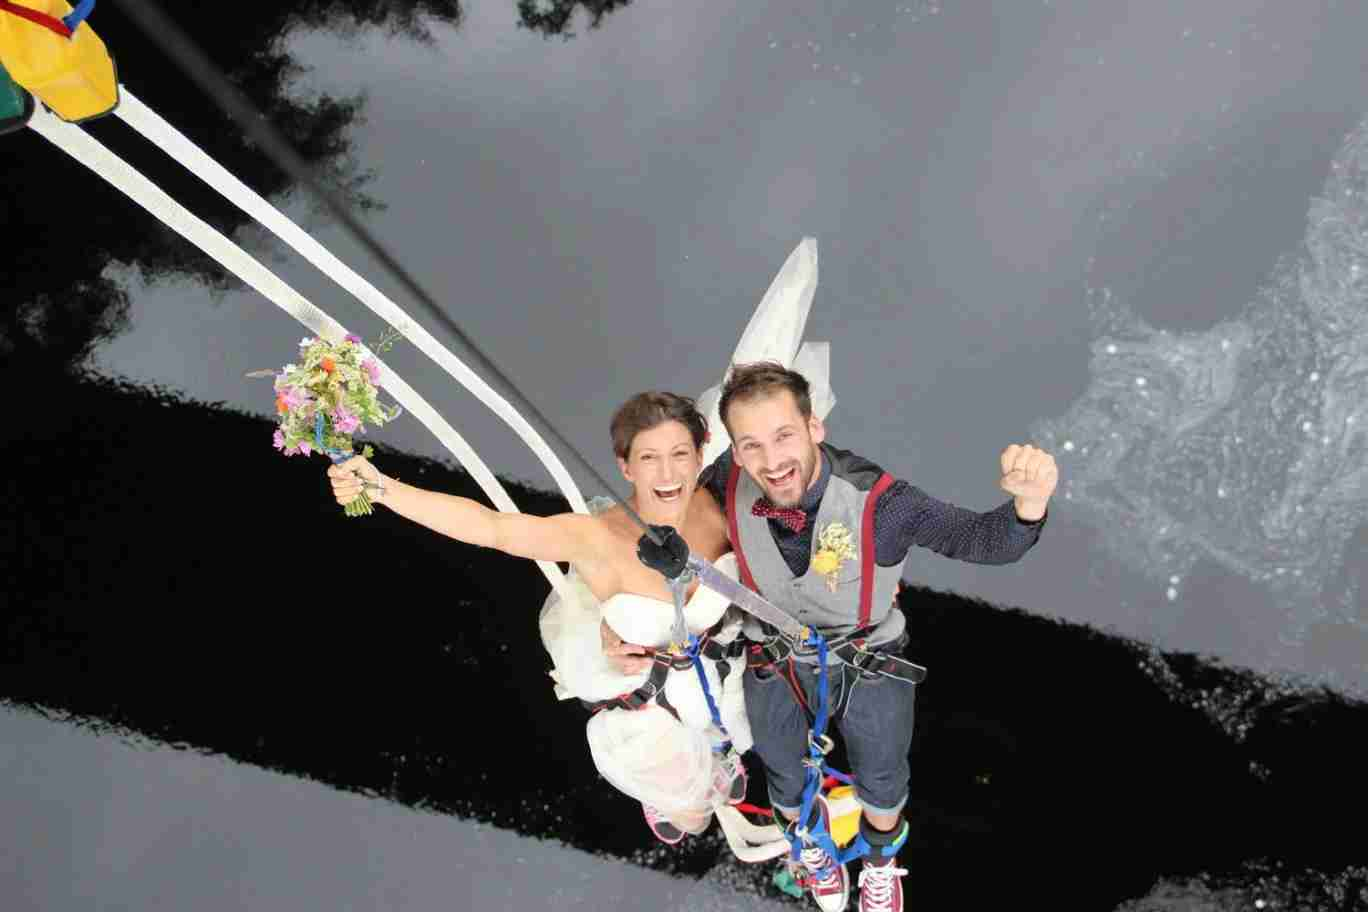 "A happy couple raises their arms in celebration after a successful plunge into marriage — literally and figuratively. Image courtesy of <a href=""https://www.facebook.com/bungeejumpscotland/photos/a.210204508992761.55958.207762905903588/1032447806768423/?type=3&amp;theater"" target=""_blank"">Highland Fling Bungee</a>."